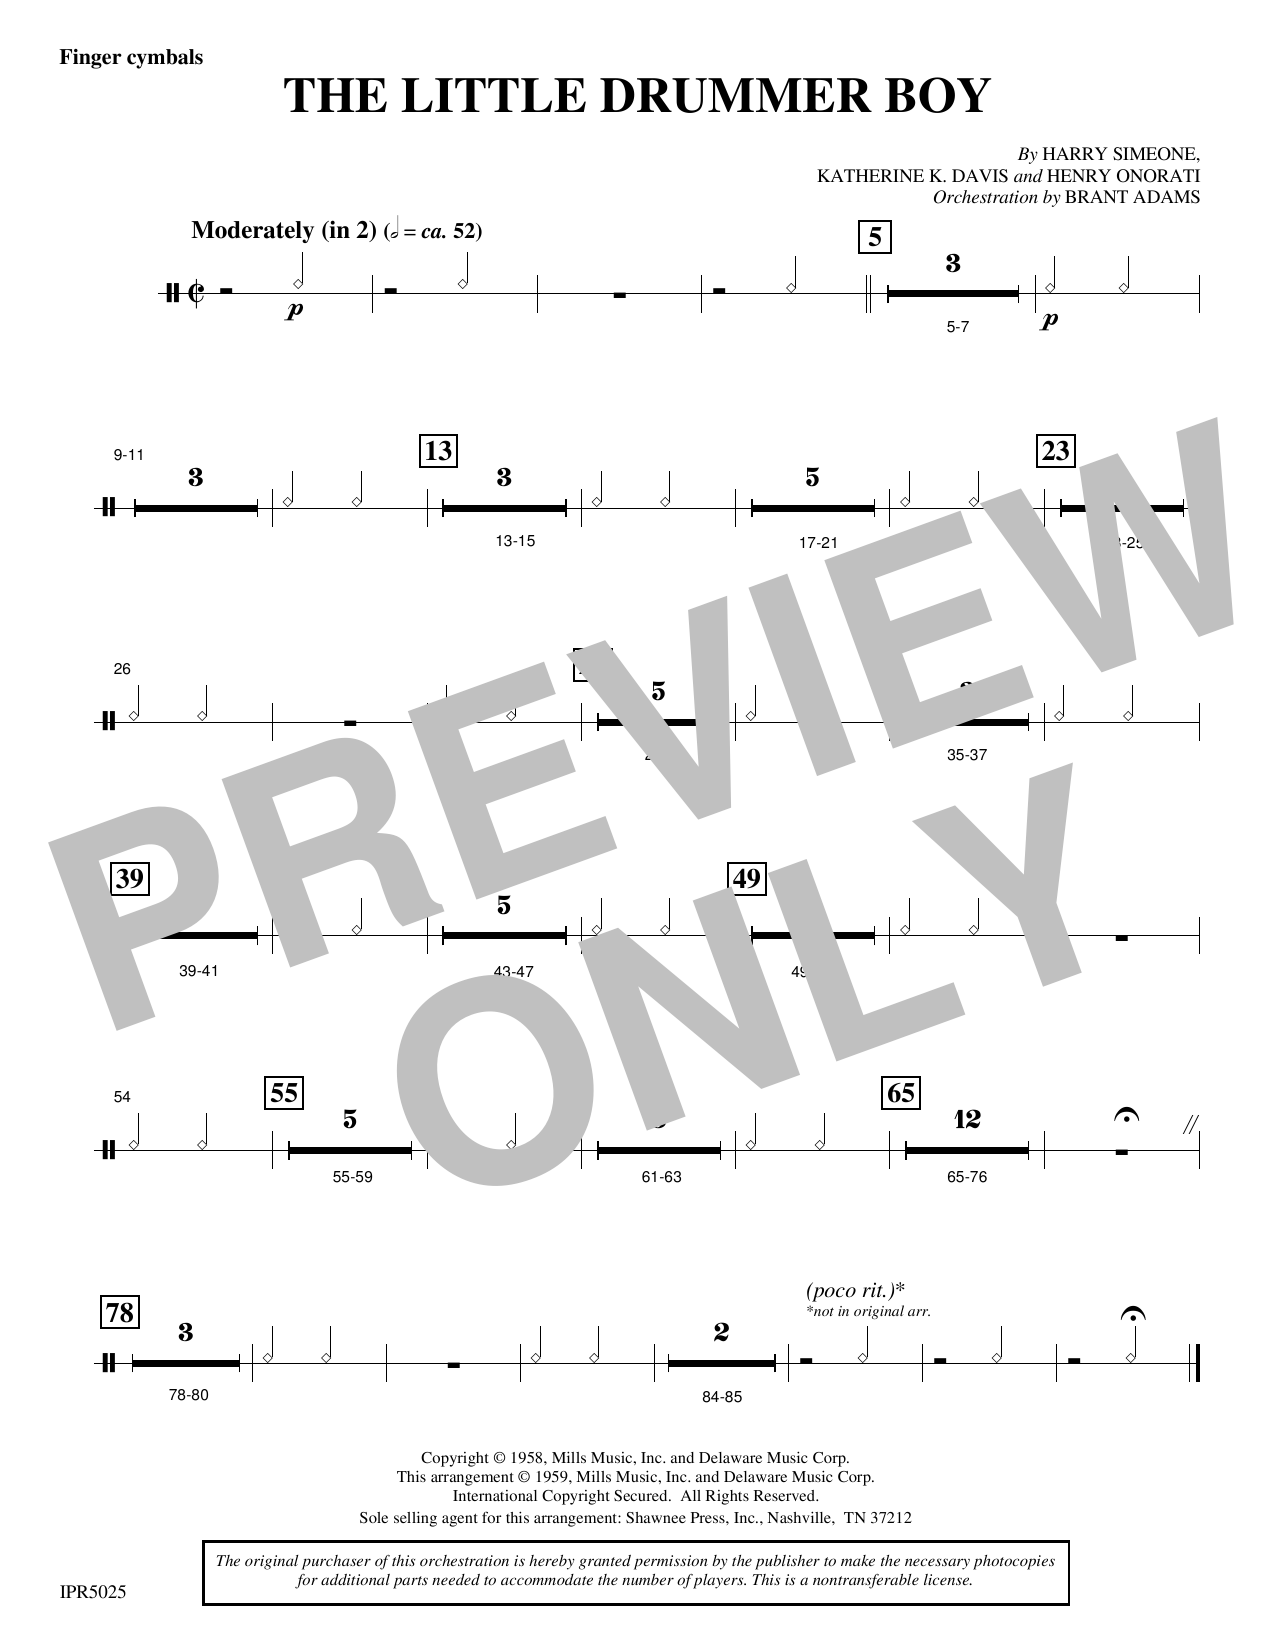 Harry Simeone The Little Drummer Boy - Finger Cymbals sheet music notes and chords. Download Printable PDF.